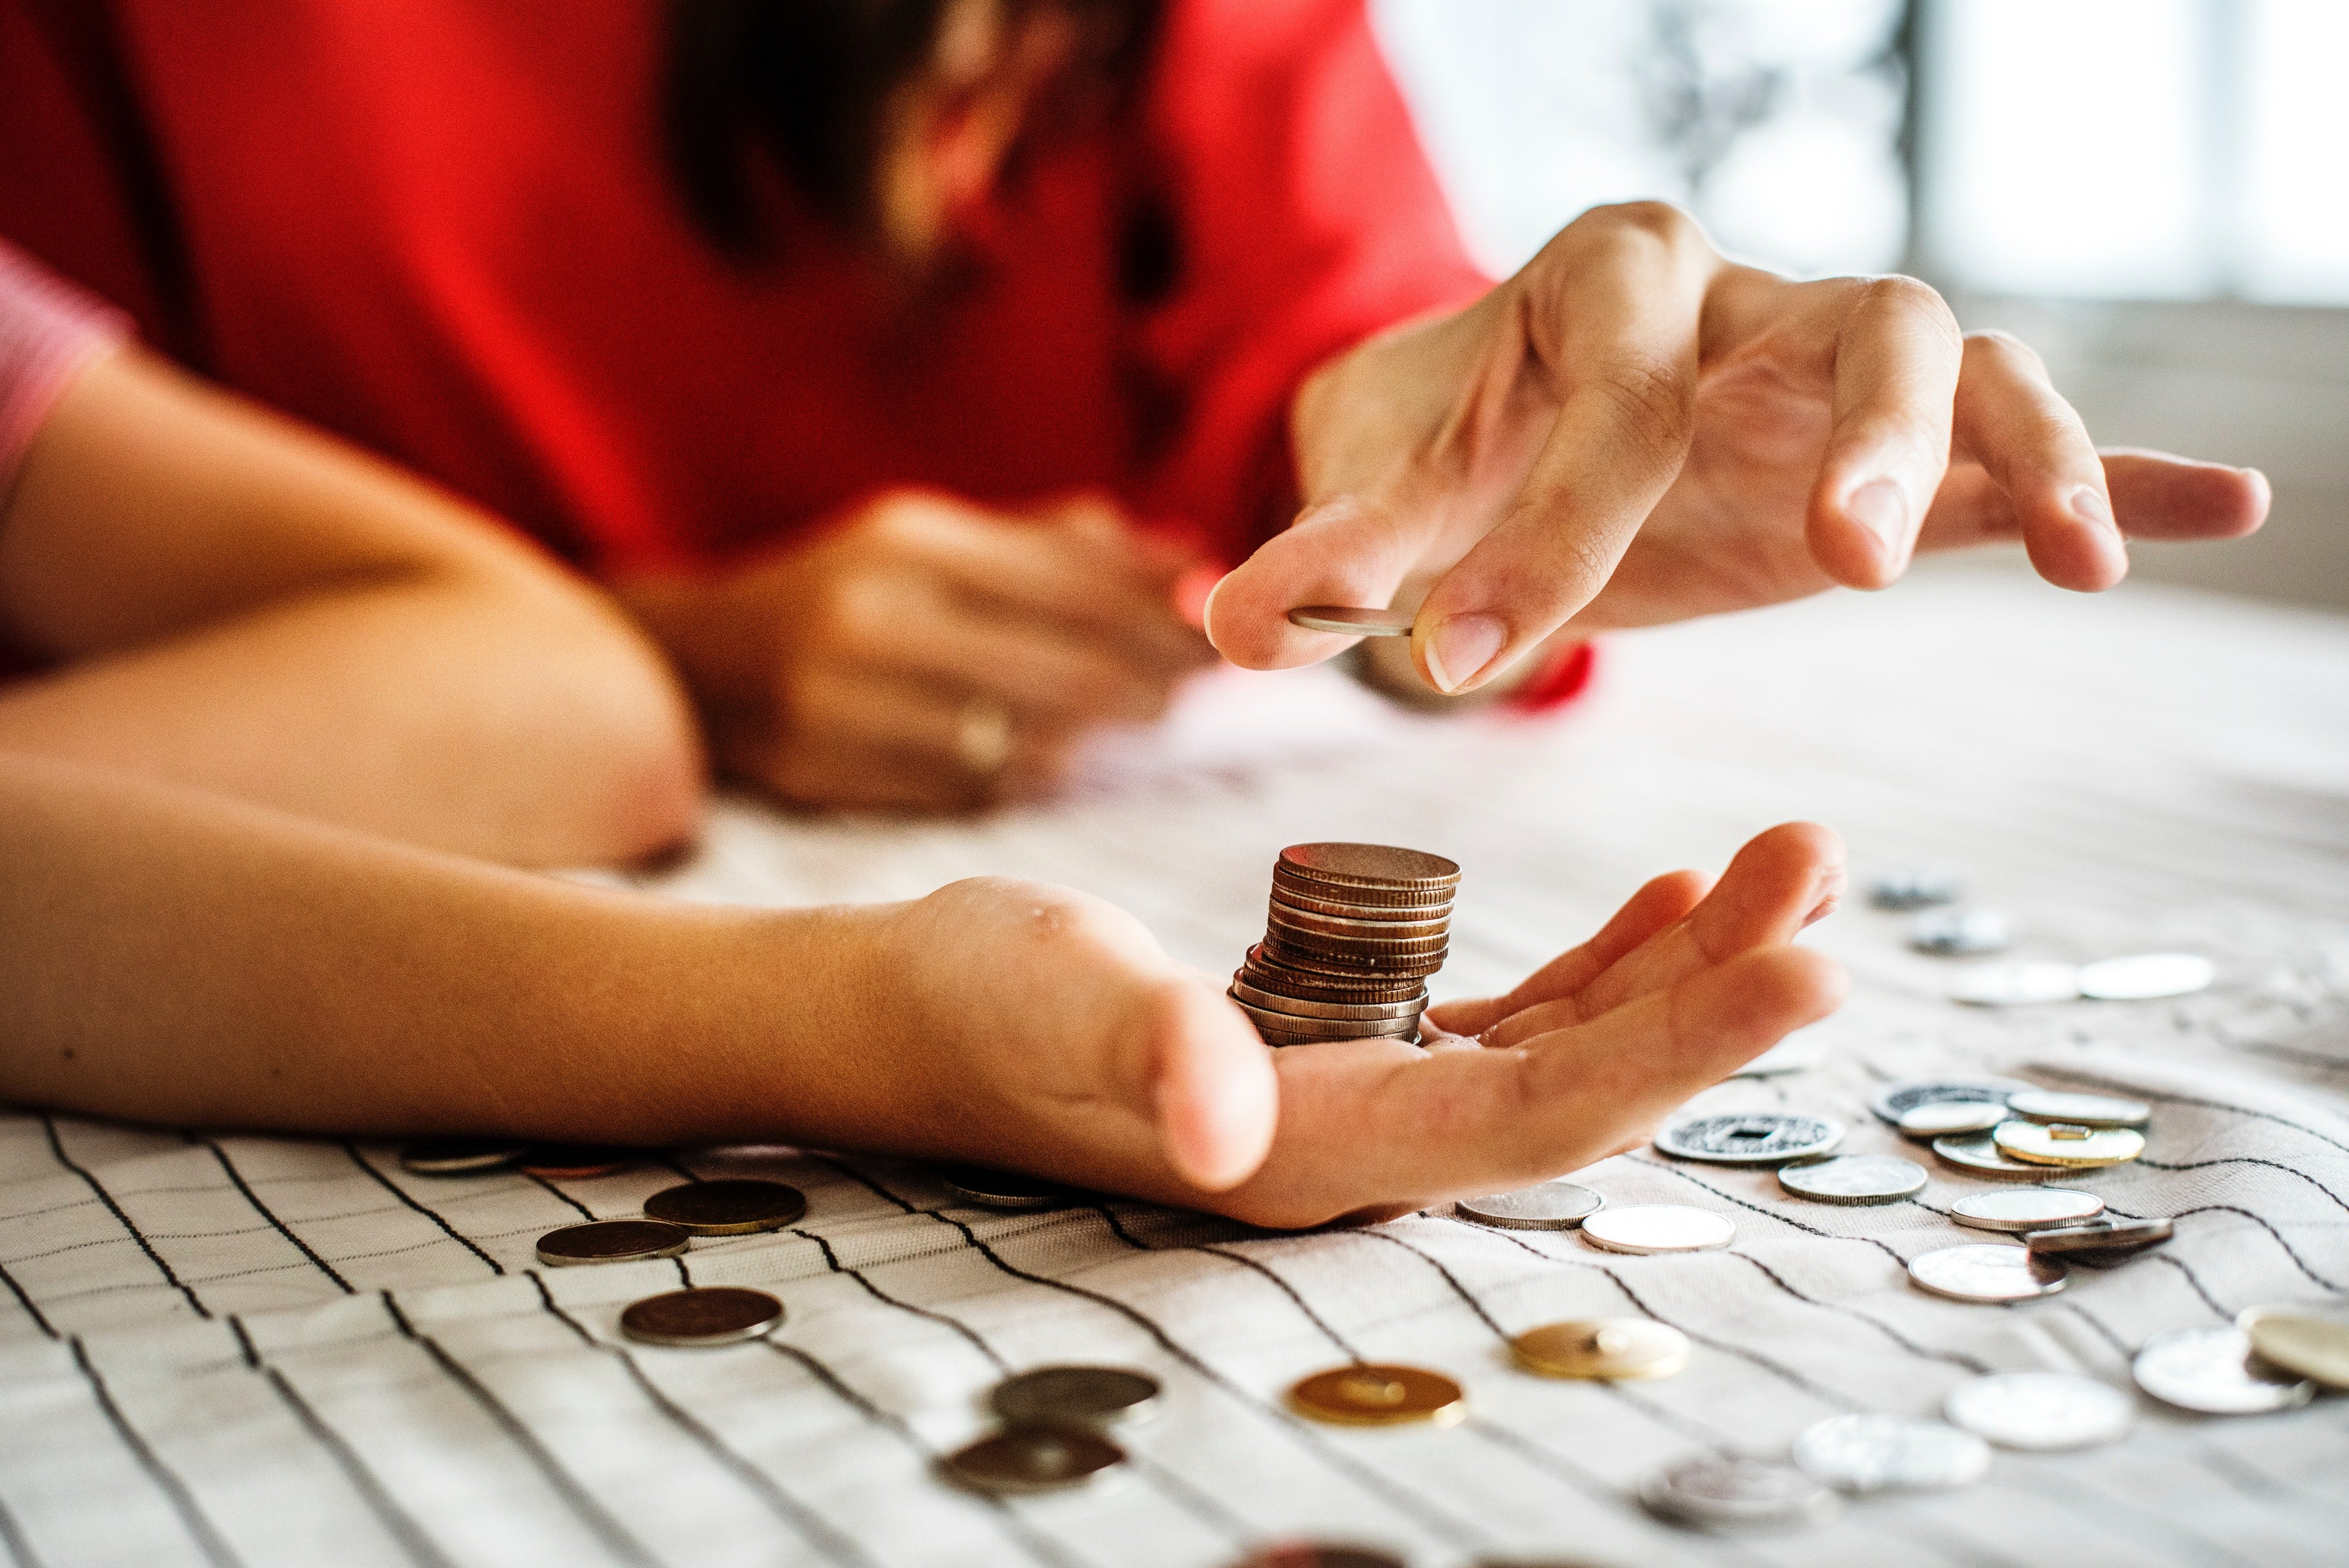 Person counting pennies in their hands.